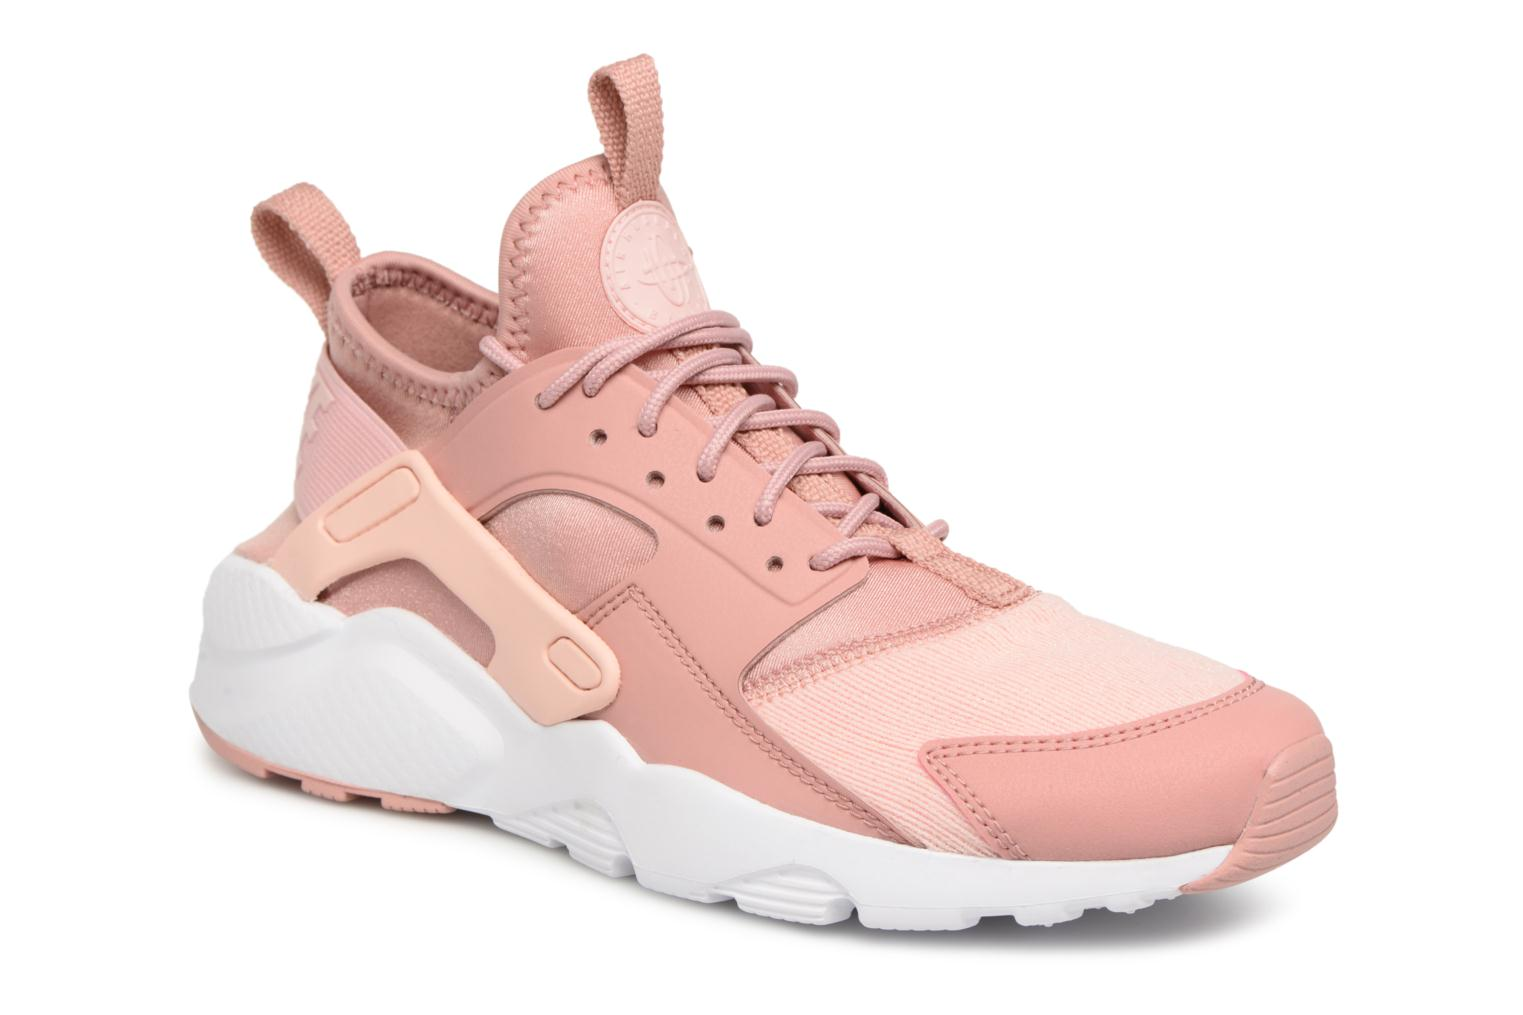 60c1dc93ccad ... usa baskets nike air huarache run ultra se gs rose vue détail paire  49c30 f4b0d